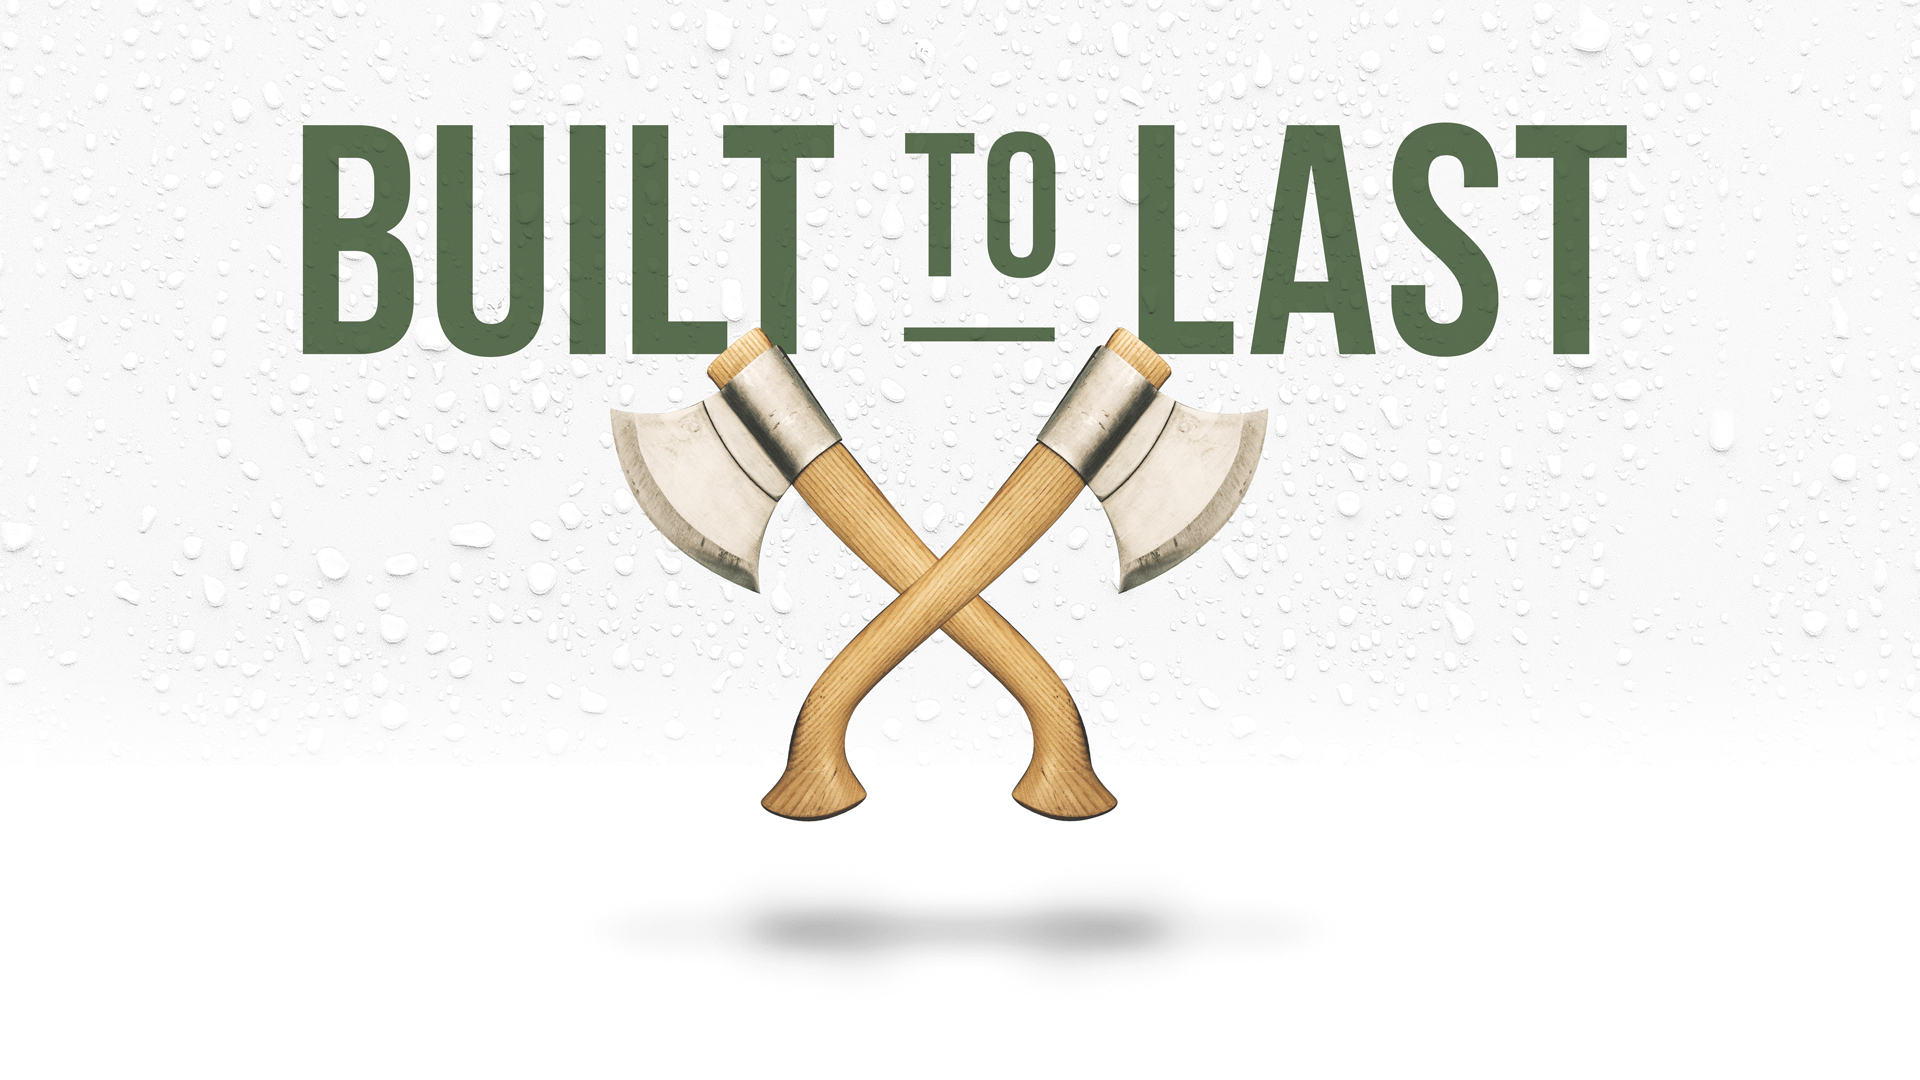 Subsistence supply company Built To Last graphic with crossed axes